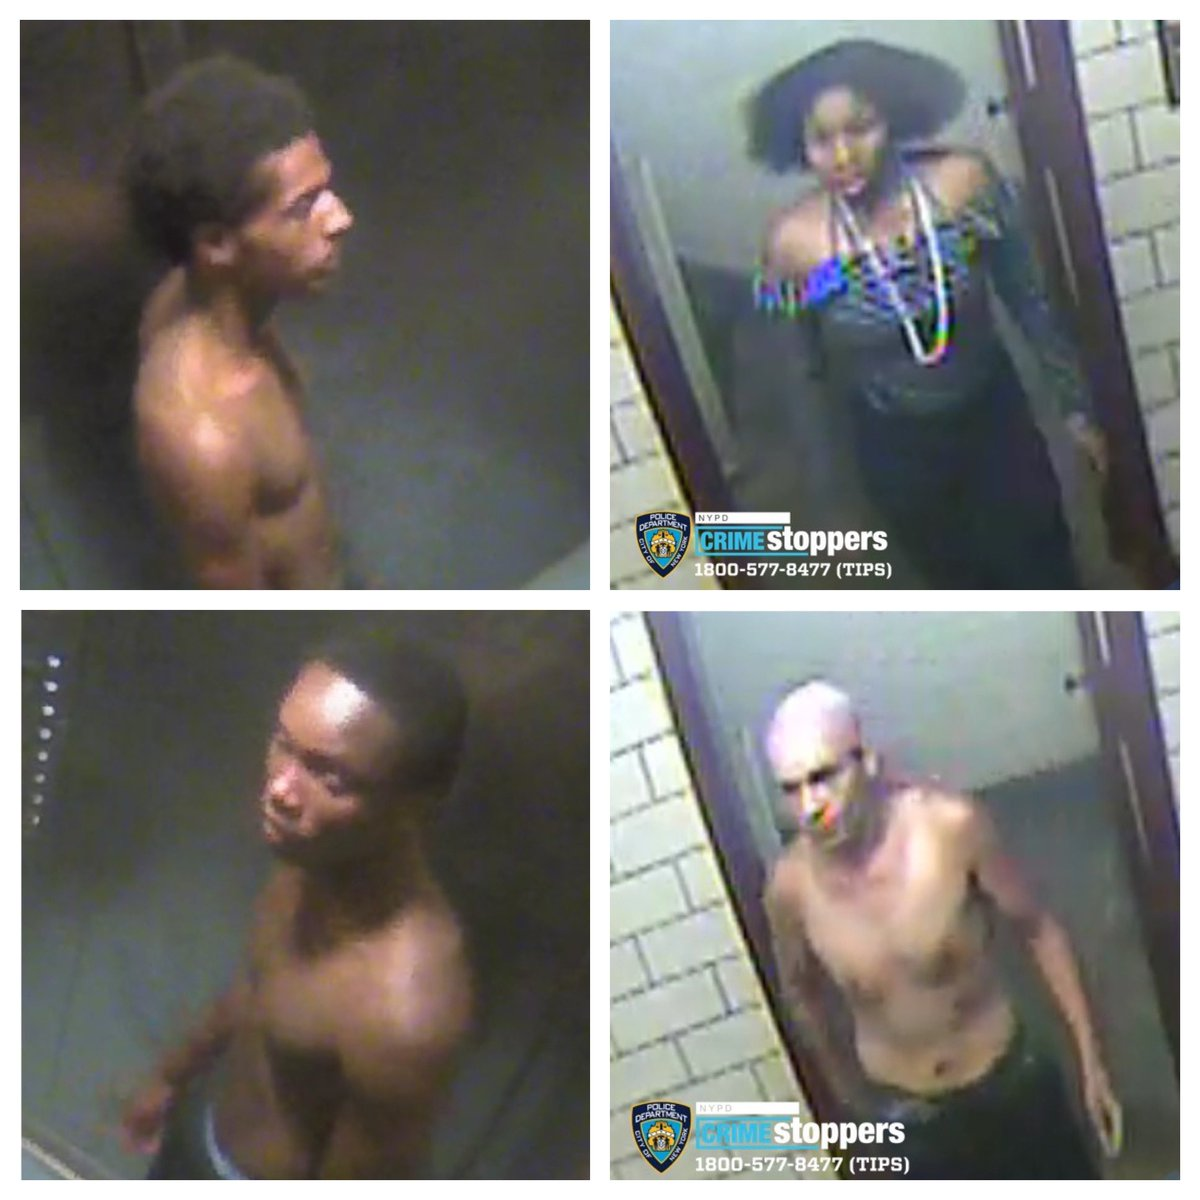 On Tuesday September 8th, 2020 inside of 2140 Seward Avenue the four individuals below attacked a 17 yr. old male, stabbing him numerous times in the torso then removing his currency from his person. If you have any information or recognize anyone below please ☎️ @NYPDTips https://t.co/IVKeFLvPX8